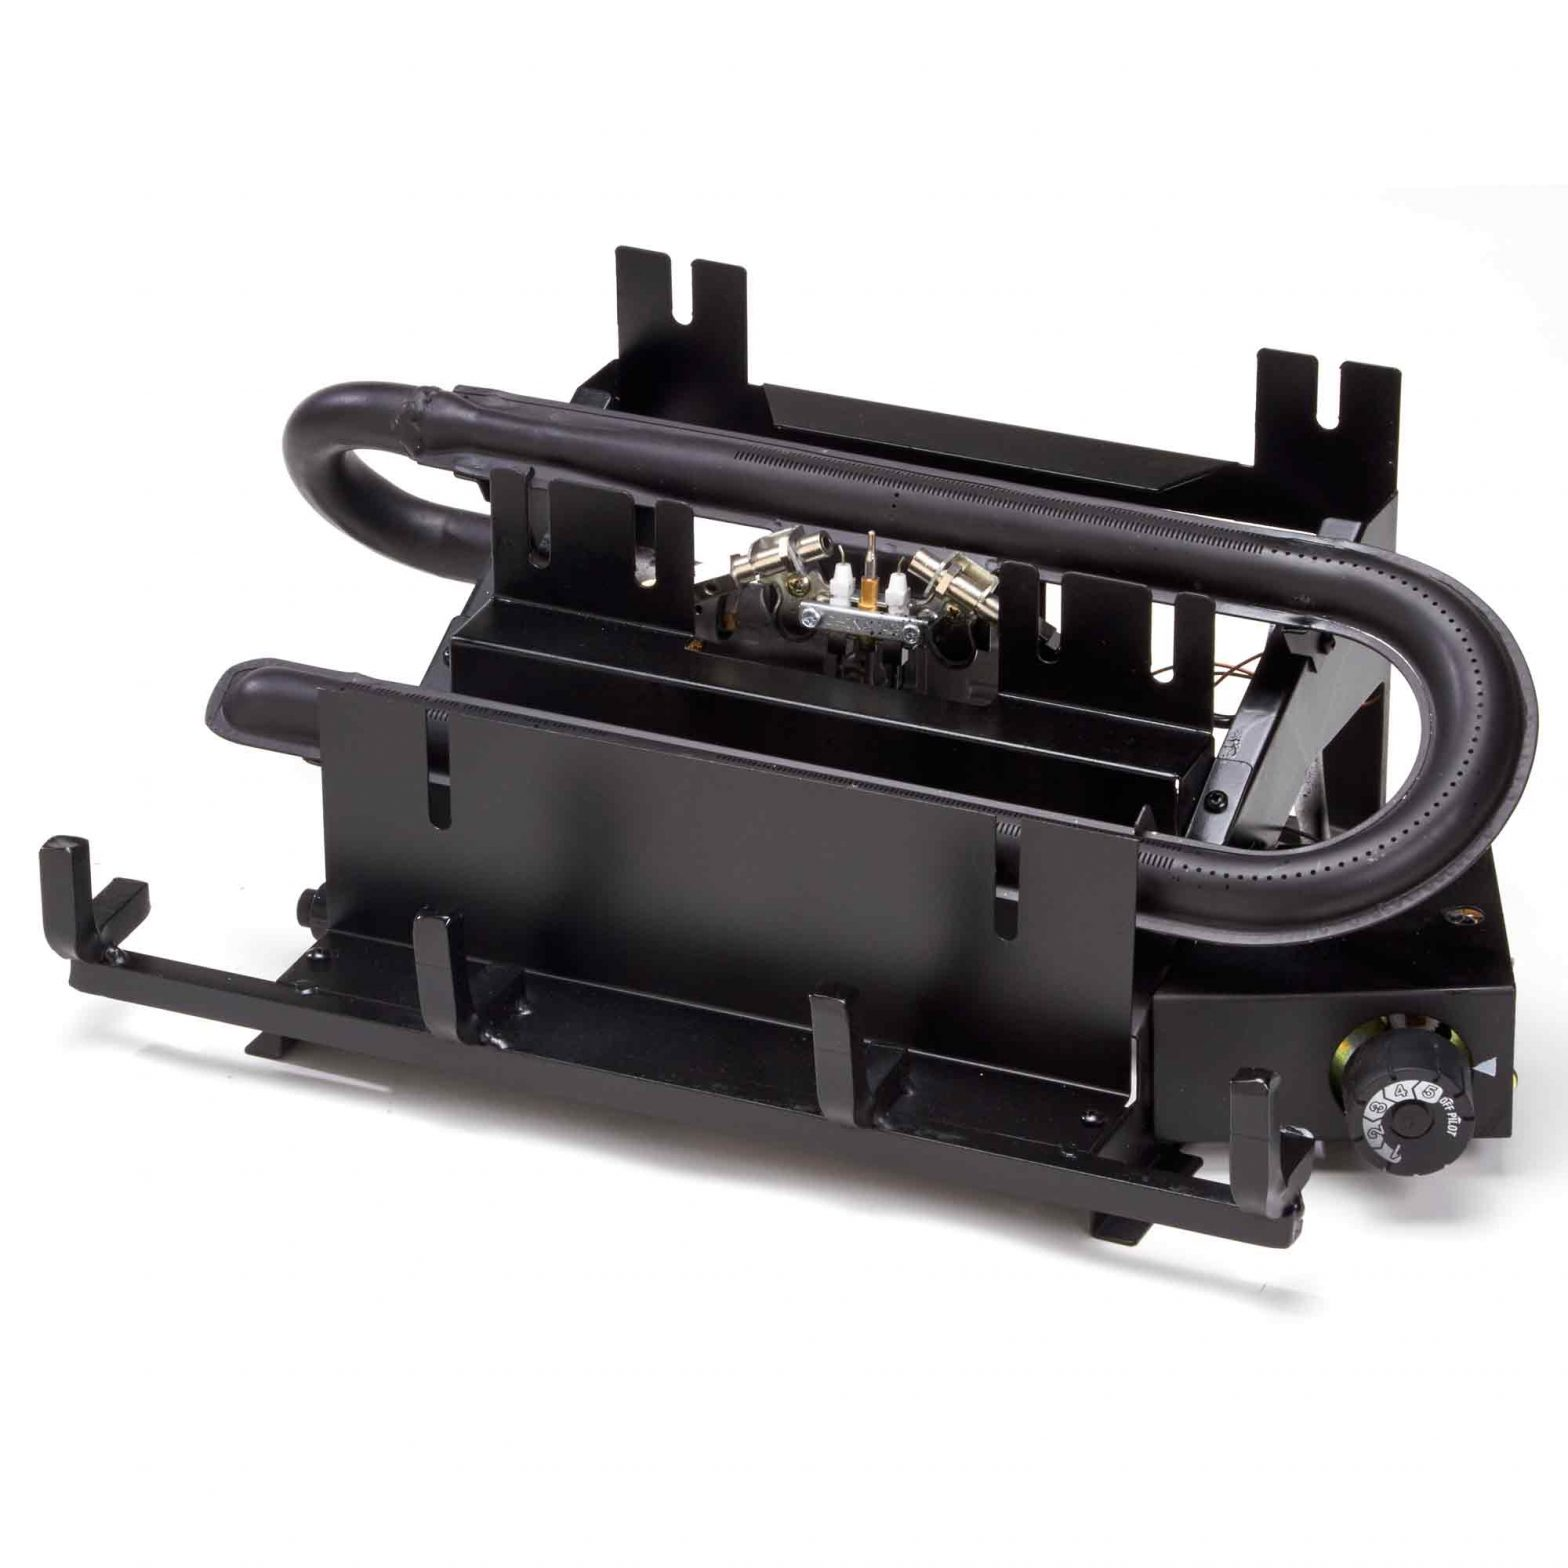 Duluth Forge Vent-Free Gas Log Chassis FDLR18-1